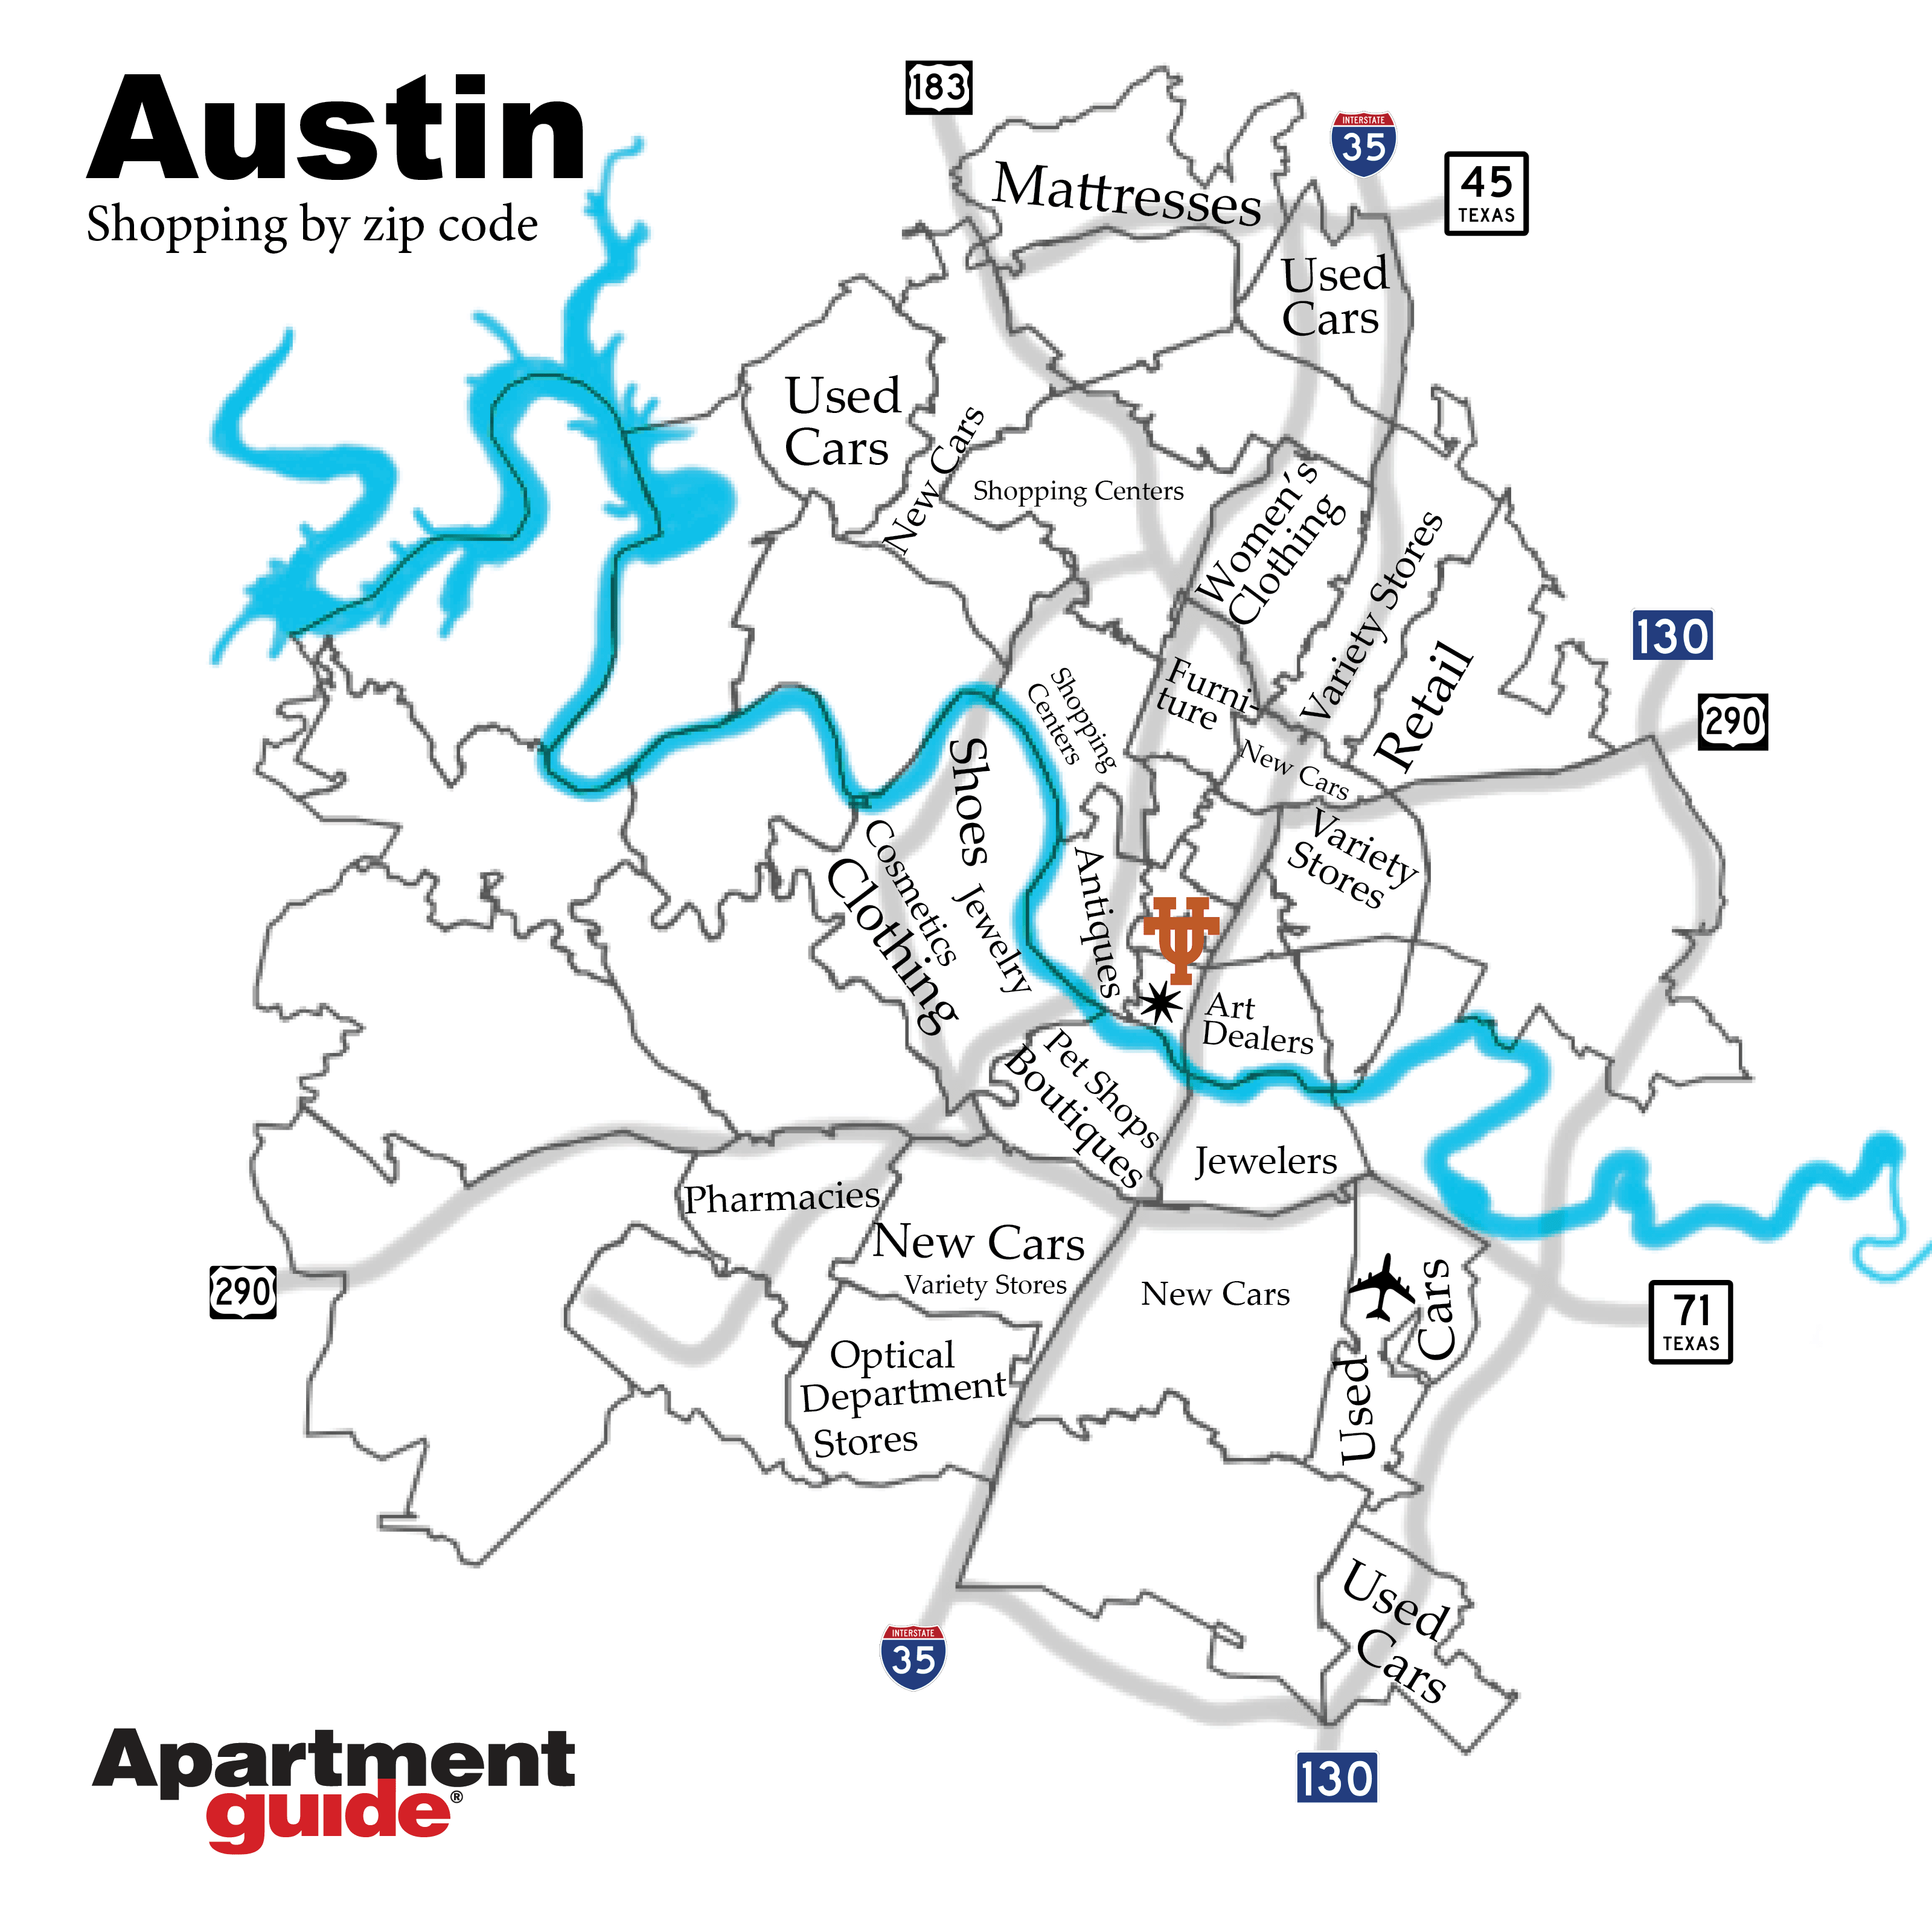 Austin map by most popular retail types